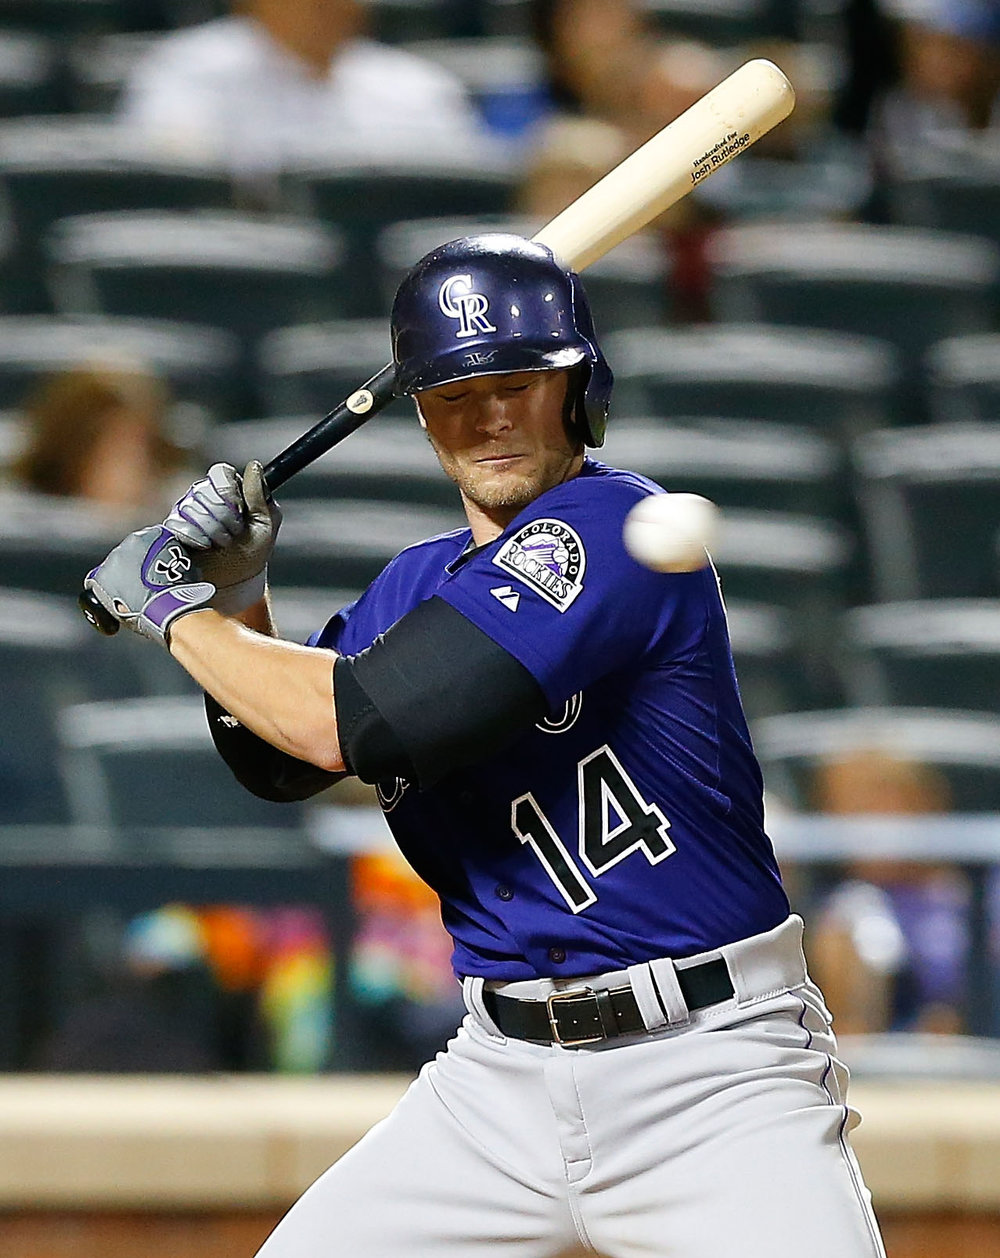 . Josh Rutledge #14 of the Colorado Rockies avoids an inside pitch in the seventh inning against the New York Mets at Citi Field on September 8, 2014 in the Flushing neighborhood of the Queens borough of New York City.  (Photo by Jim McIsaac/Getty Images)